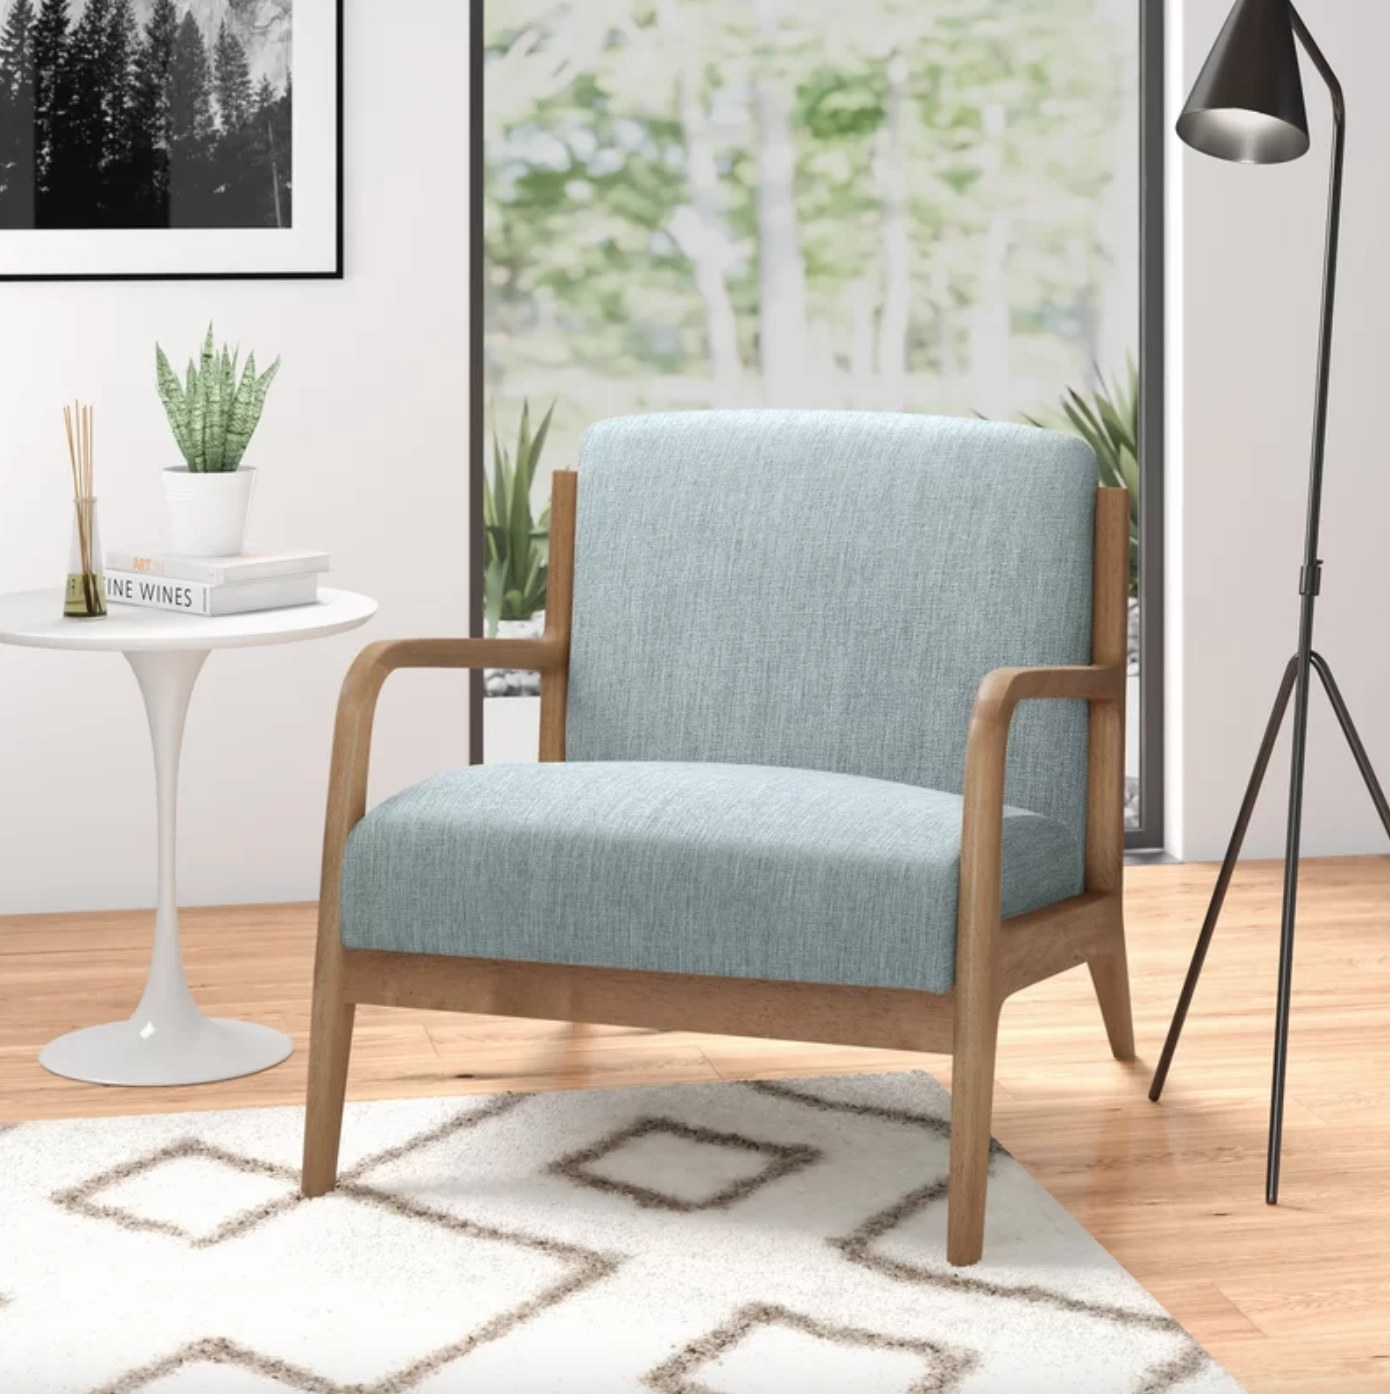 The wide armchair in light blue with a light wood frame